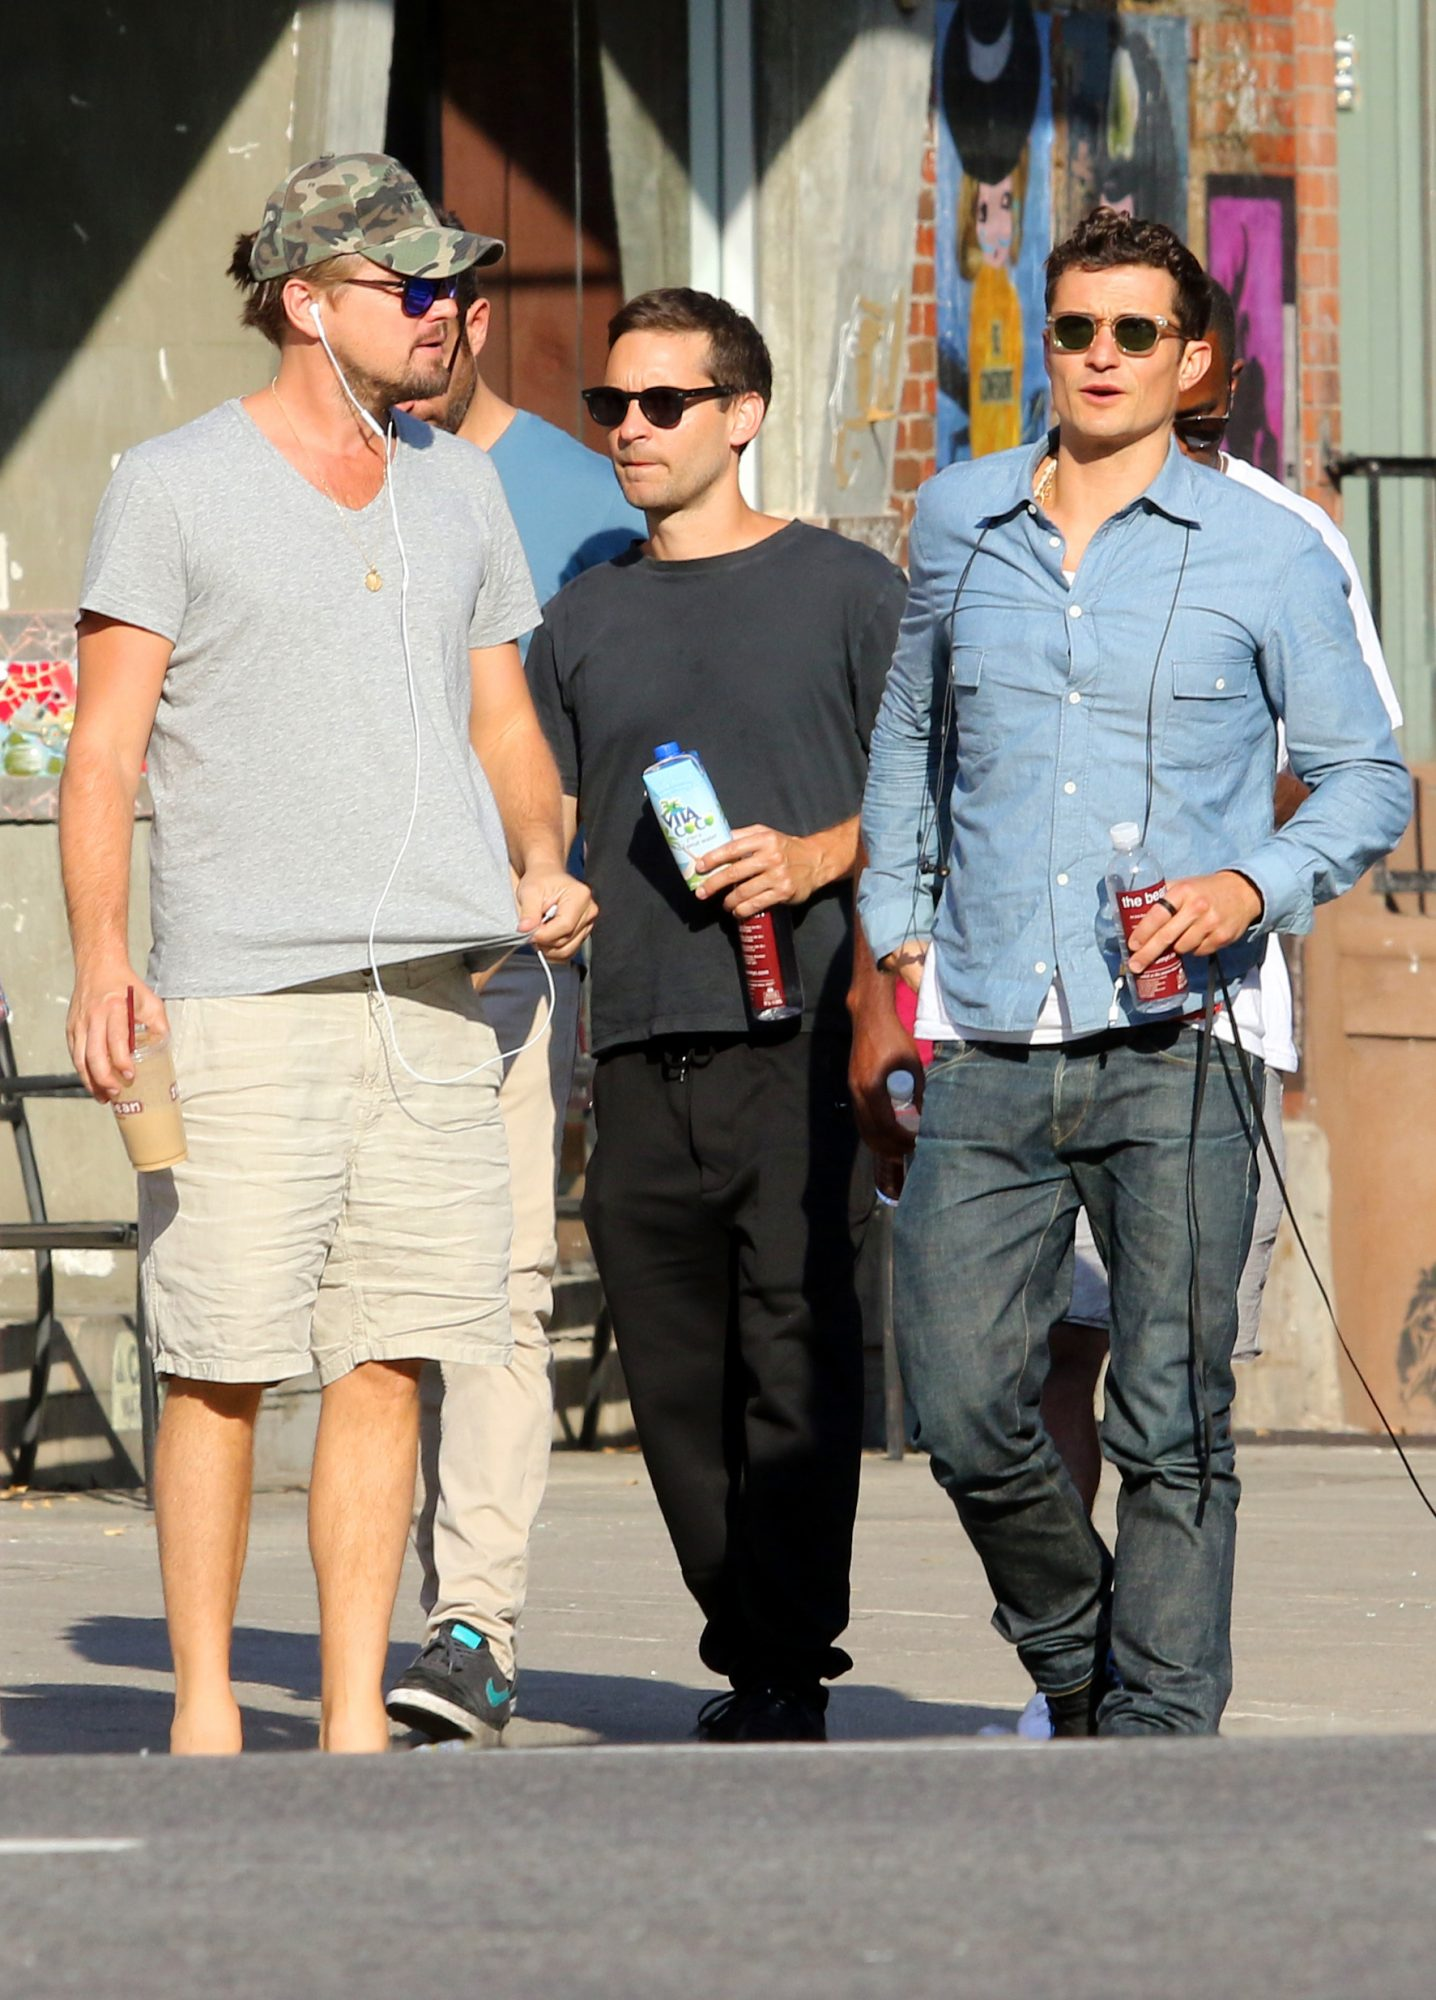 Leonardo DiCaprio, Tobey Maguire and Orlando Bloom meet up and hang out in NYC